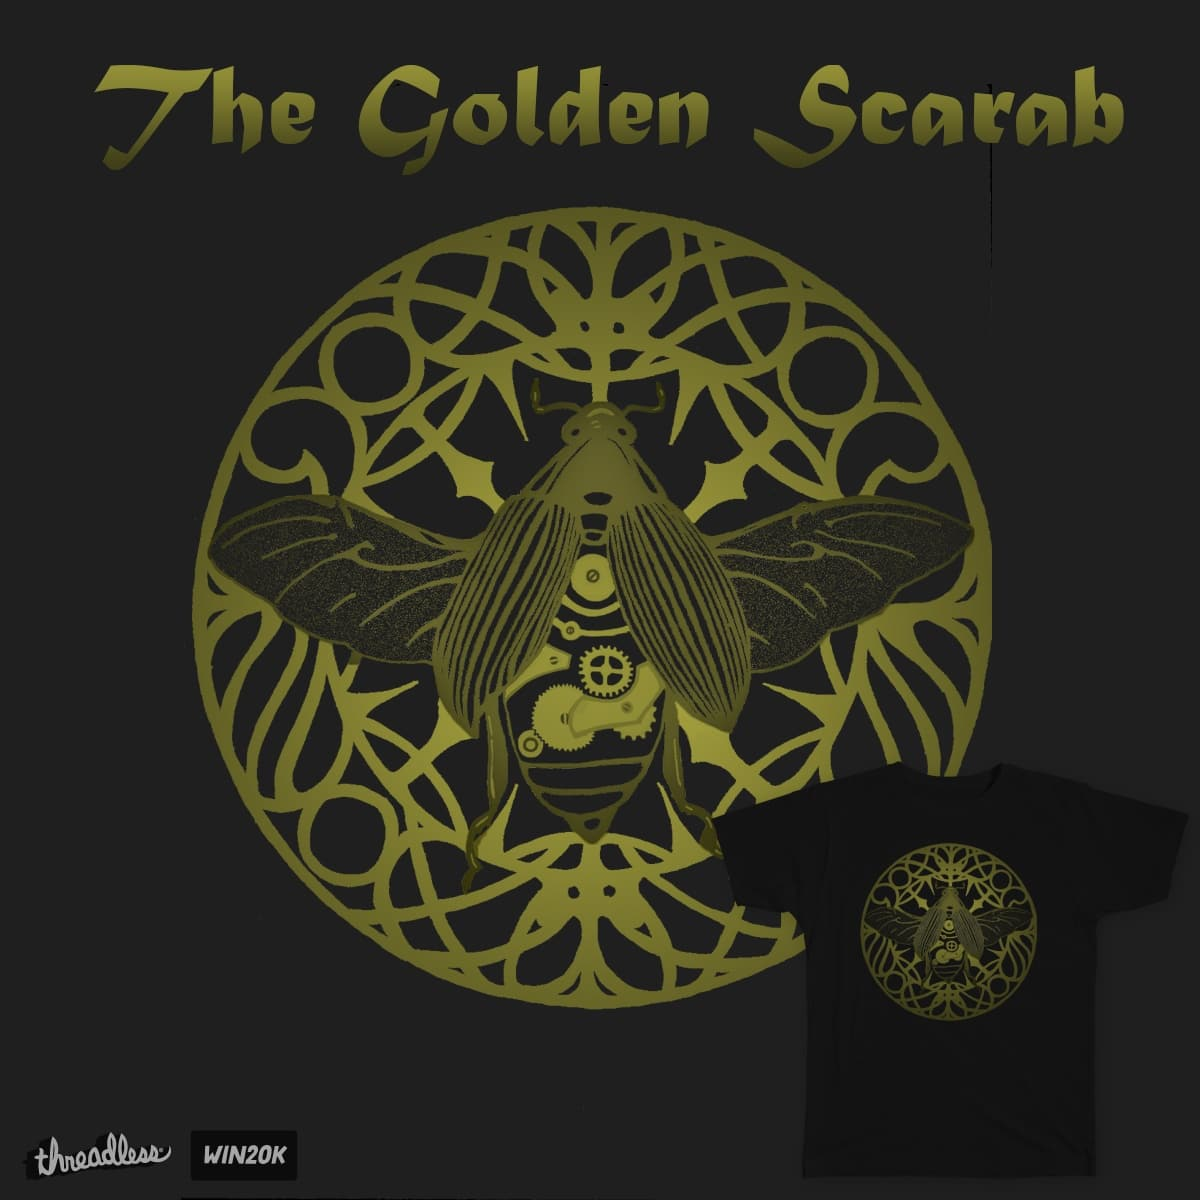 The Golden Scarab by TRYBYK on Threadless